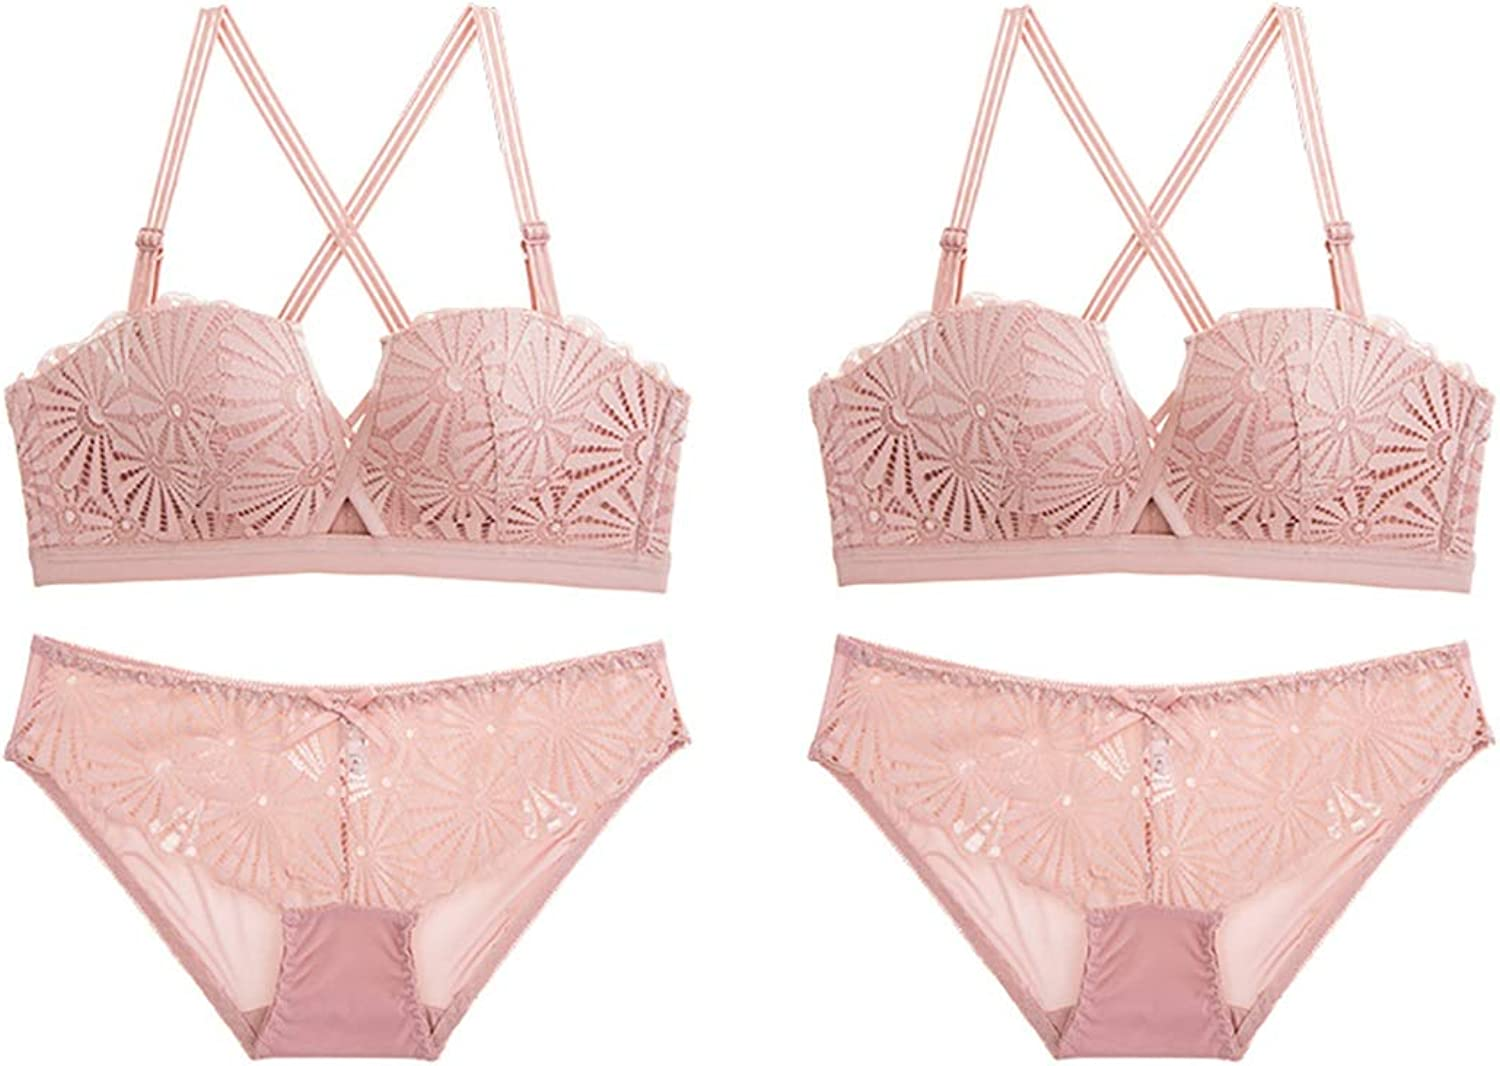 NICE' living hall Lace Embroidered Floral Comfort Gathered Sexy Bra 2 Piece Suit, Sponge, no Steel Ring, Adjustable Chest Type, Three Rows of Three Buckles. Comfortable (Size   70B=30B=65B)